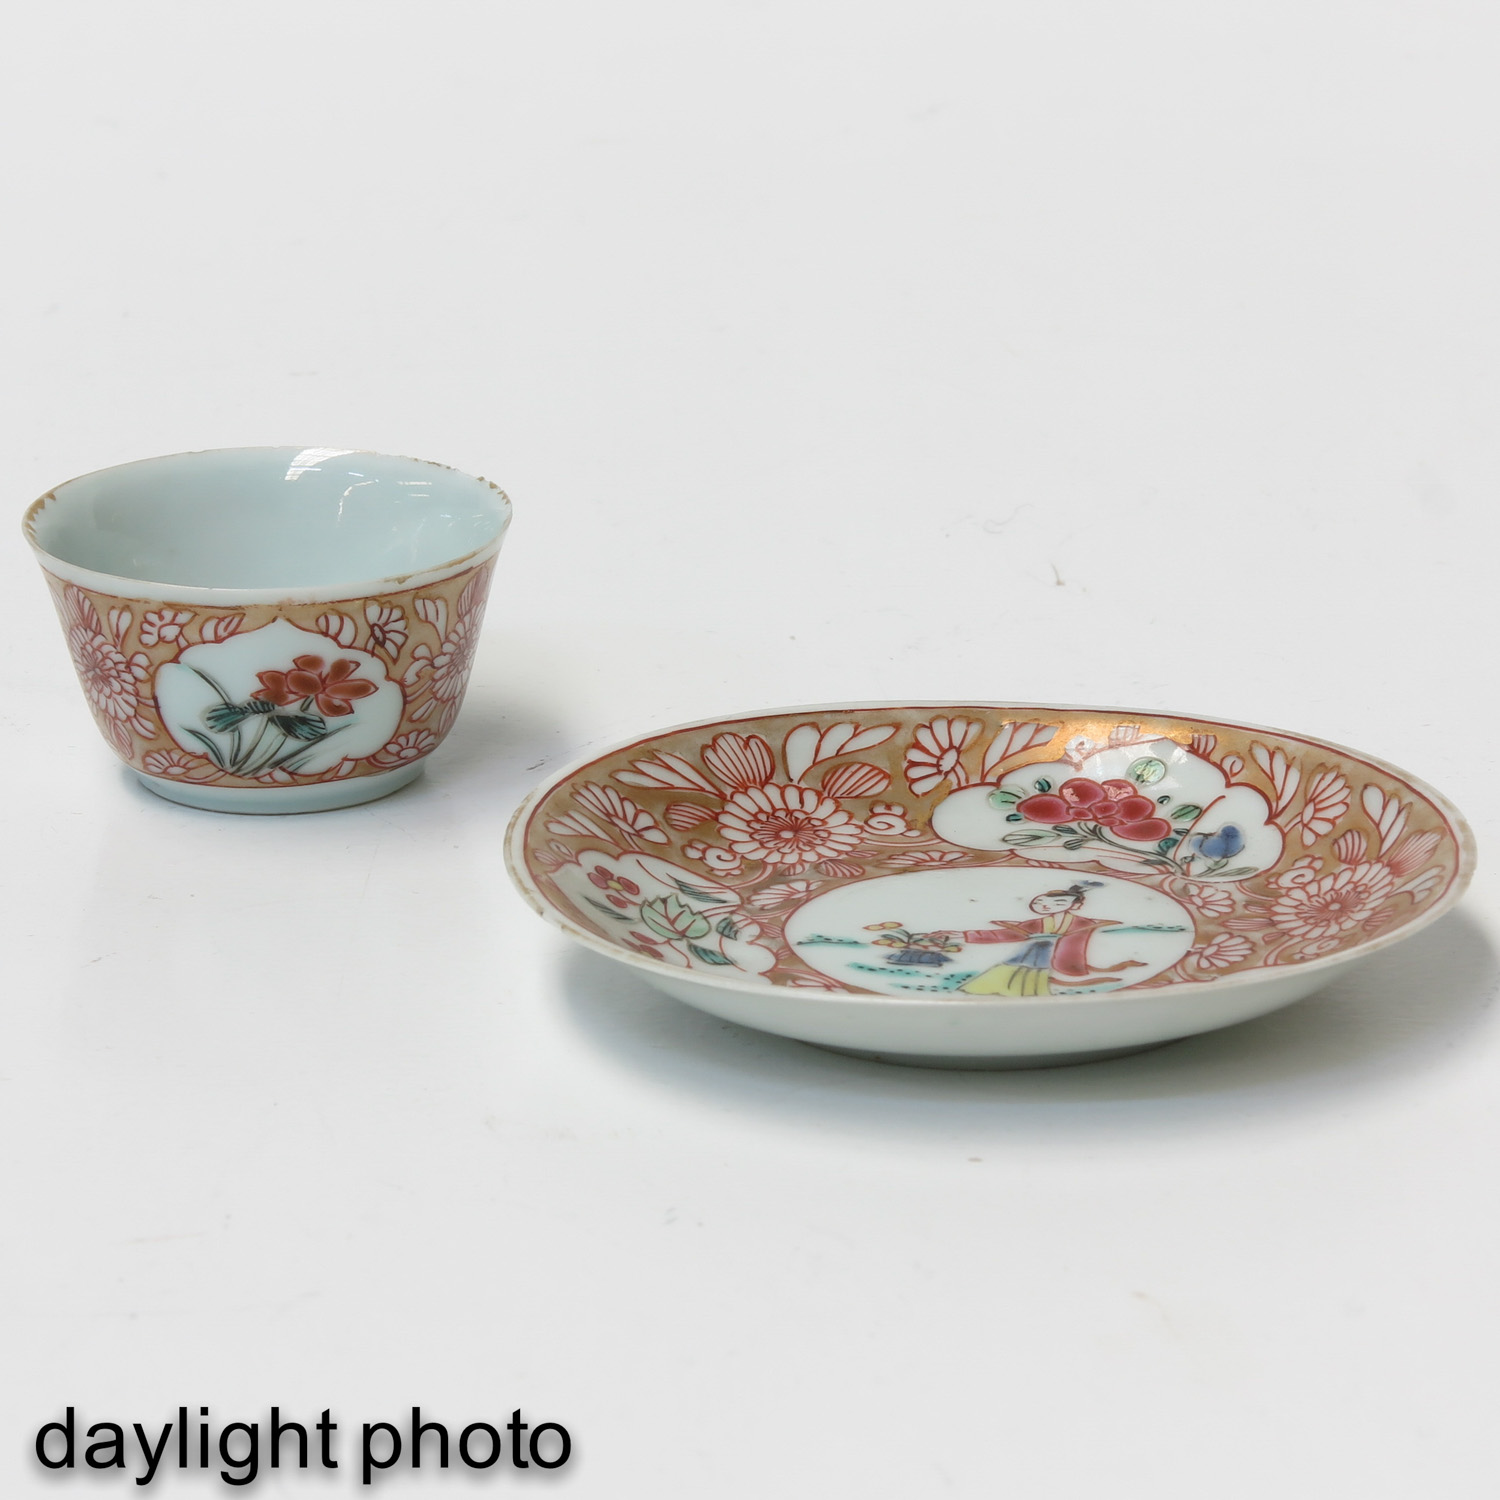 A Set of 2 Cups and Saucers - Image 9 of 10